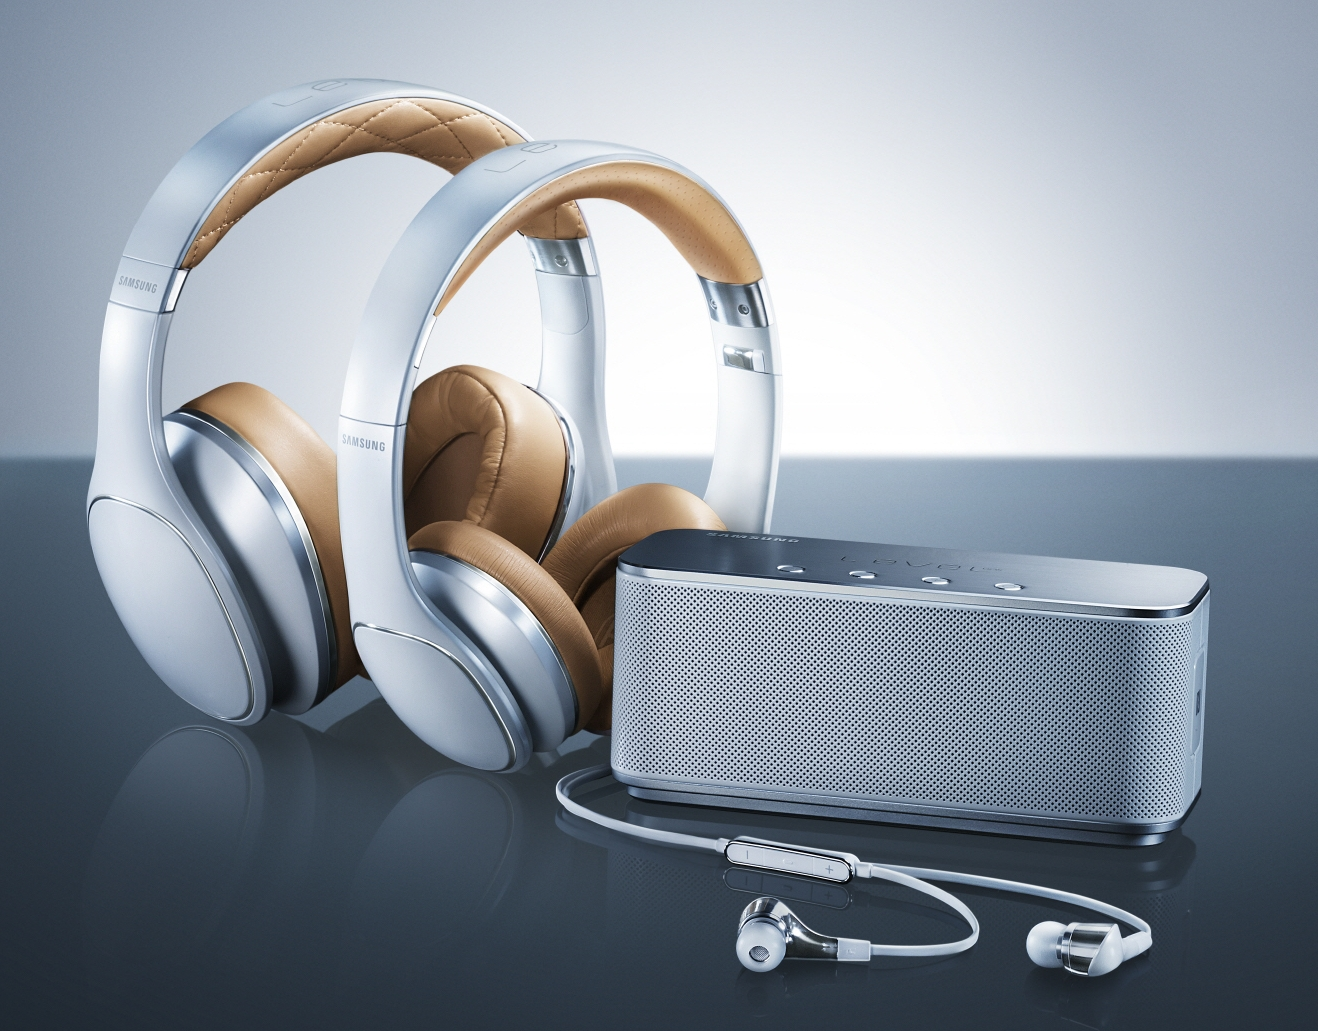 Samsung Telecommunications America nnounced the U.S. availability of the Samsung Level portfolio of premium mobile audio products. (image credit: Samsung Electronics)